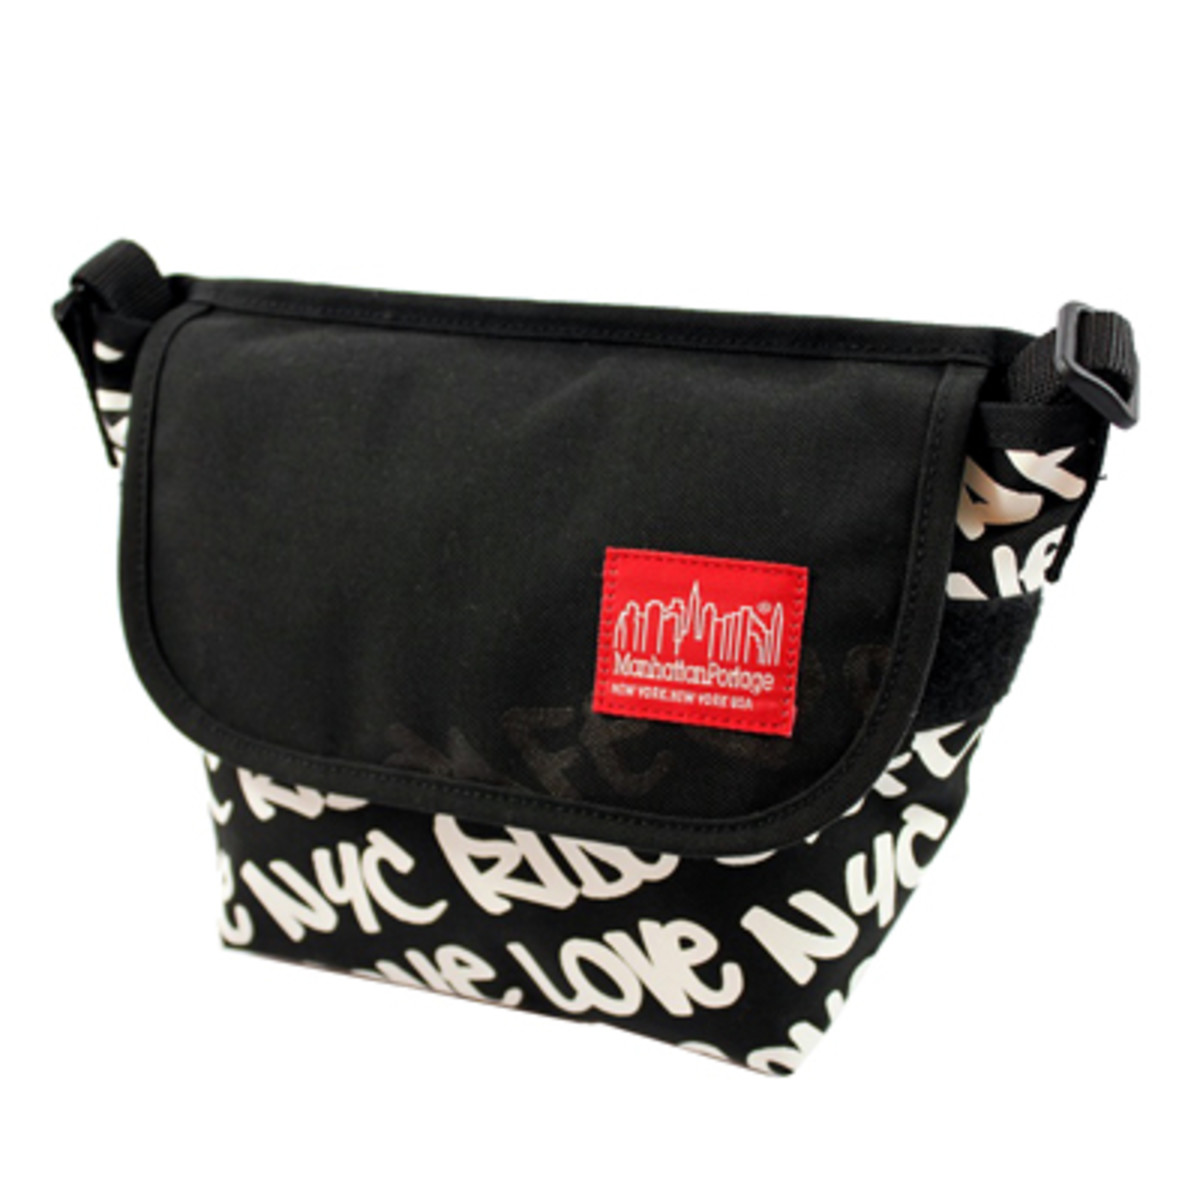 Graphic Message Casual Messenger Bag Small